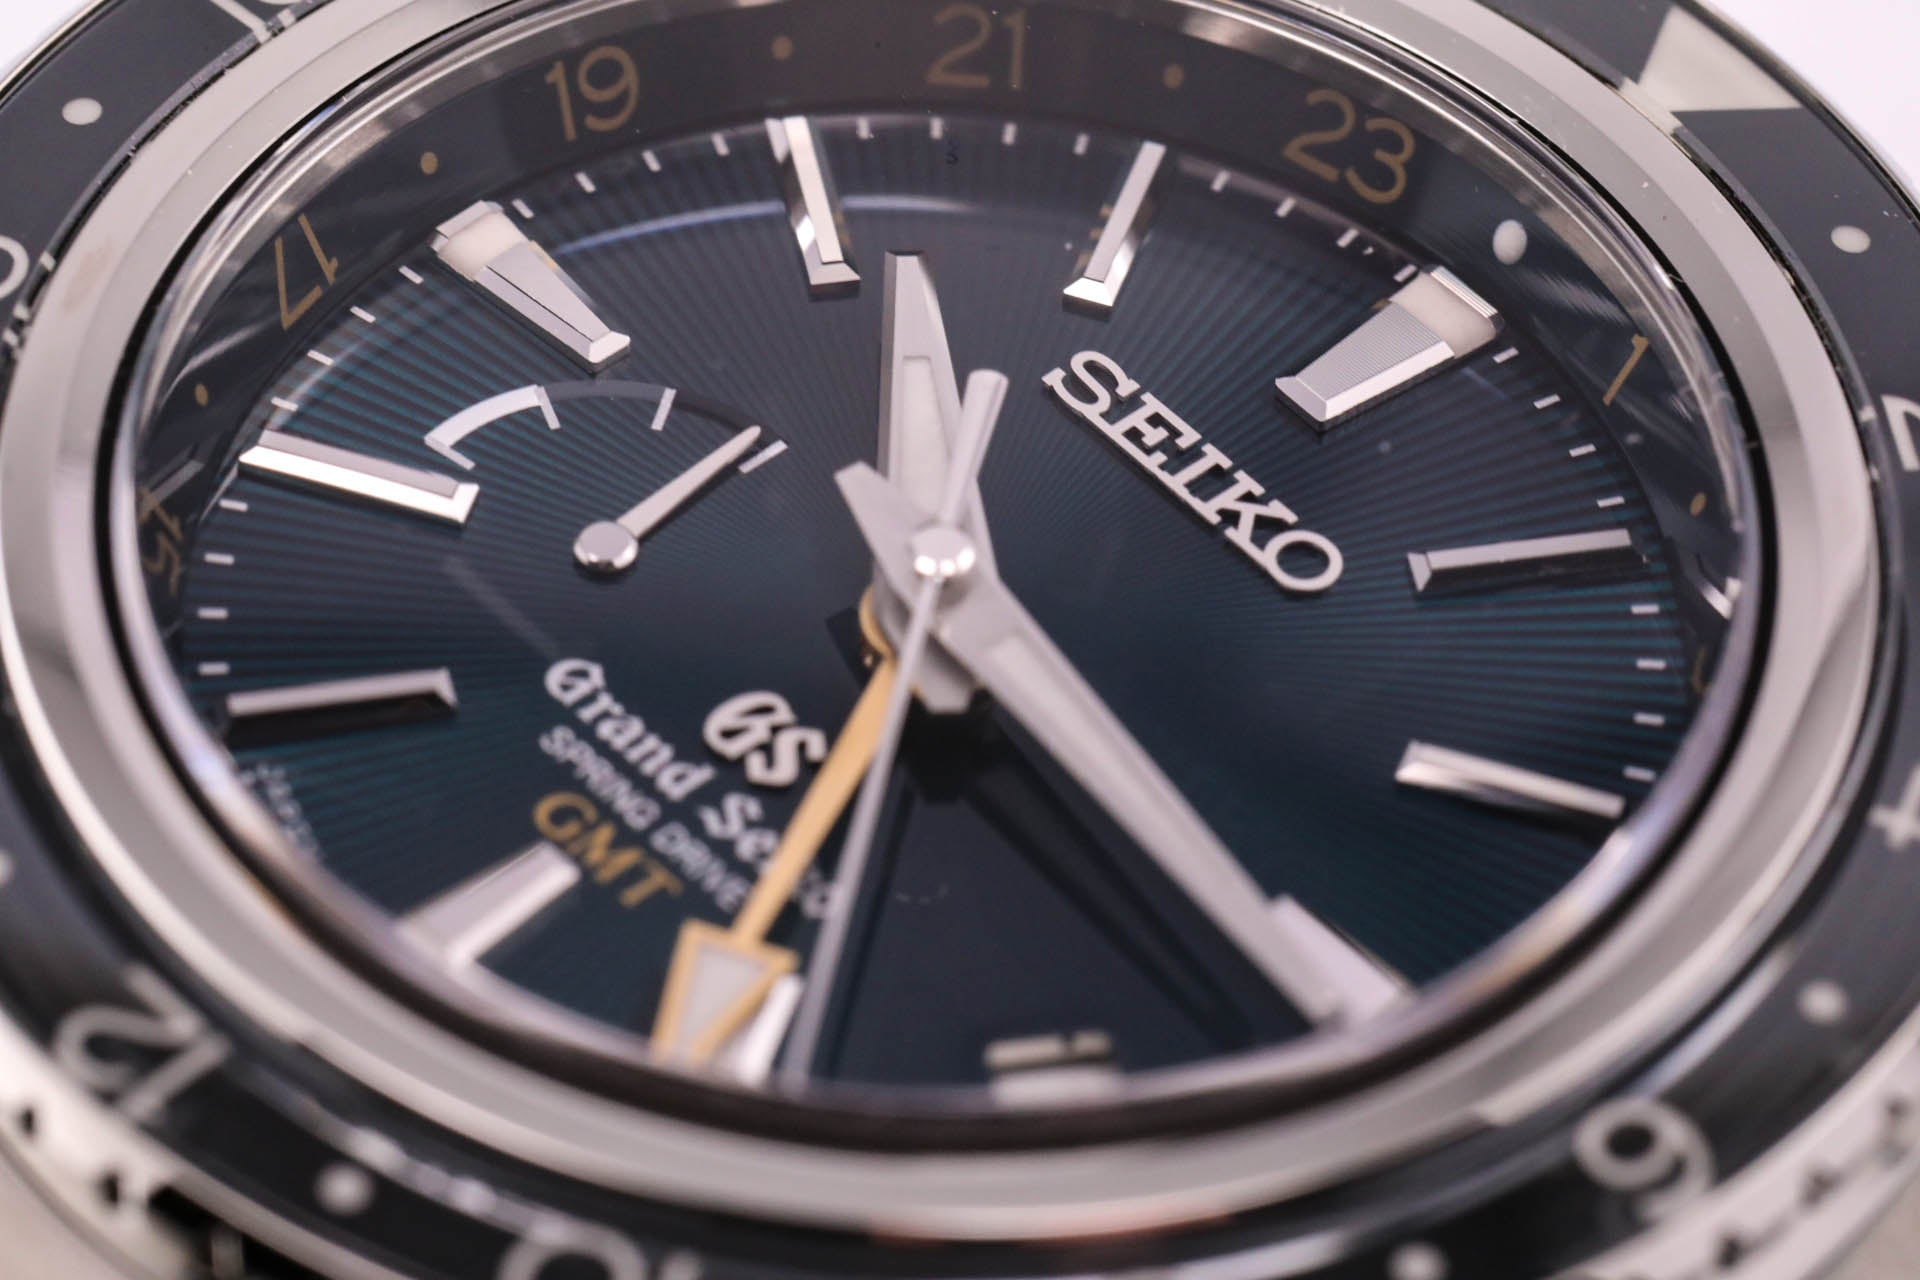 Seiko Grand Seiko Spring Drive GMT Limited Edition